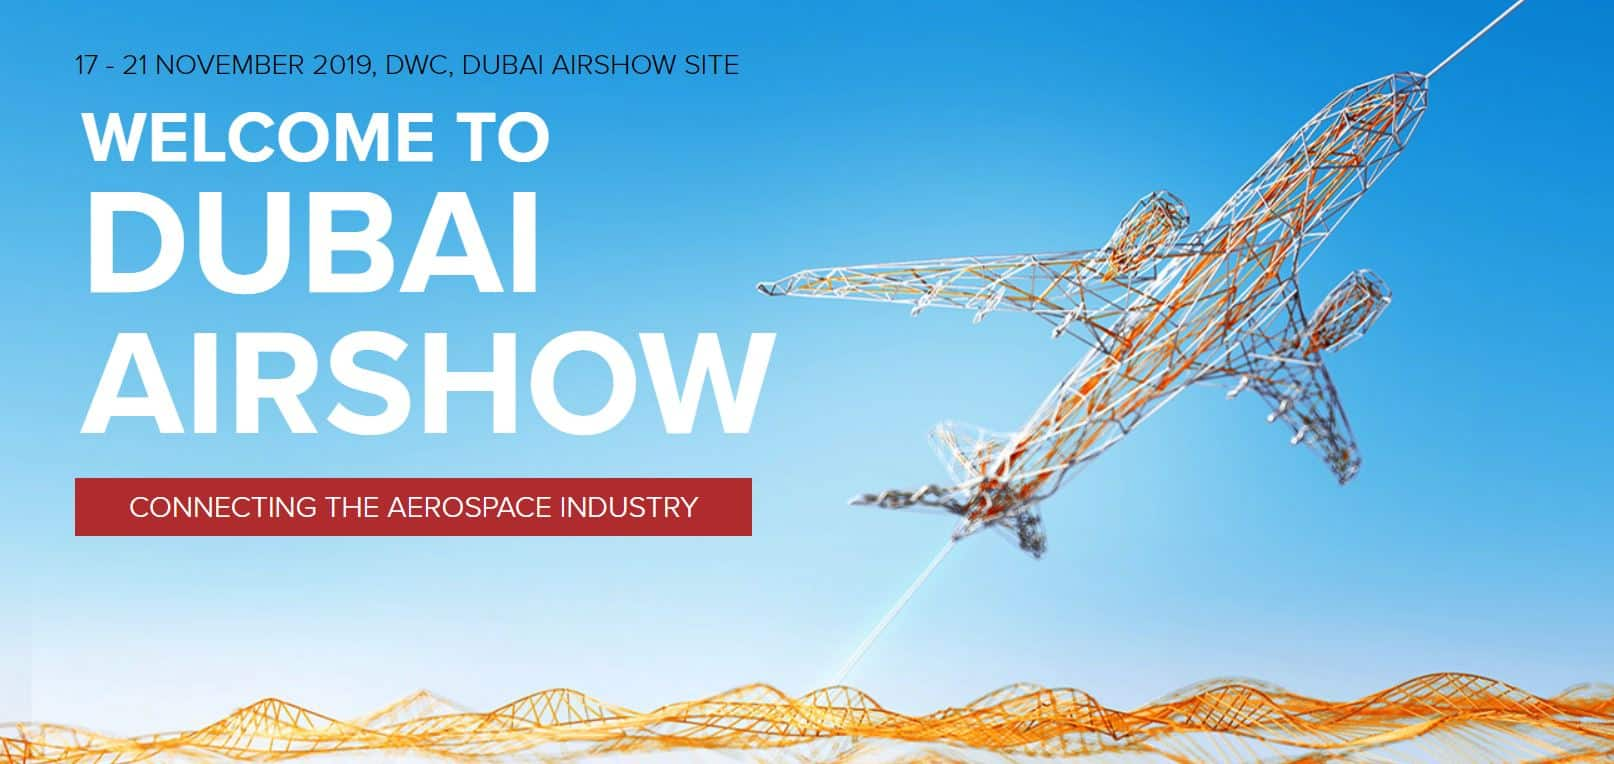 LD Switzerland helmets part of DUBAI AIRSHOW